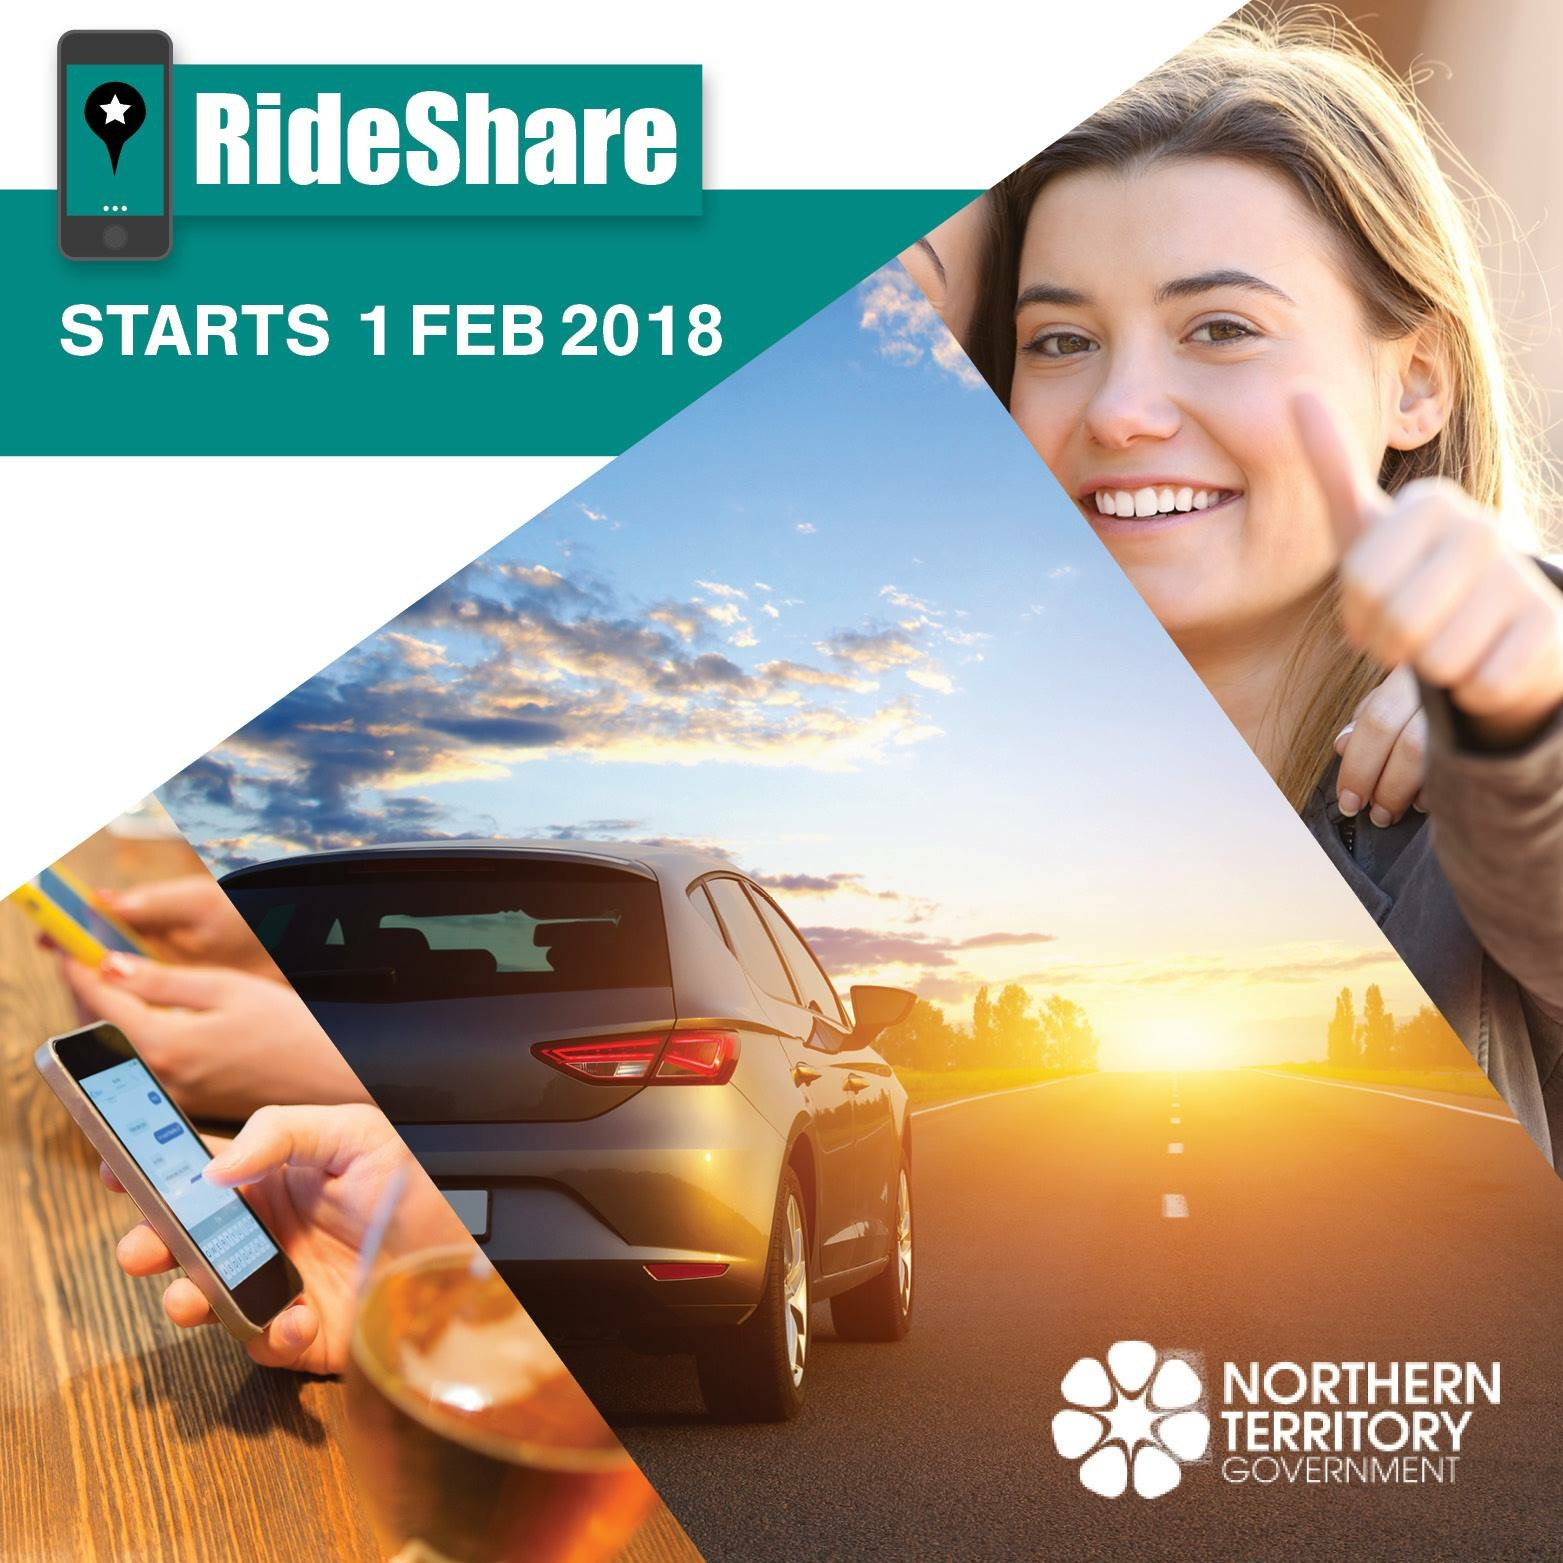 A picture with a car driving into the sunset, a girl with a smile giving a thumbs up and the text Rideshare starts 1 Feb 2018.